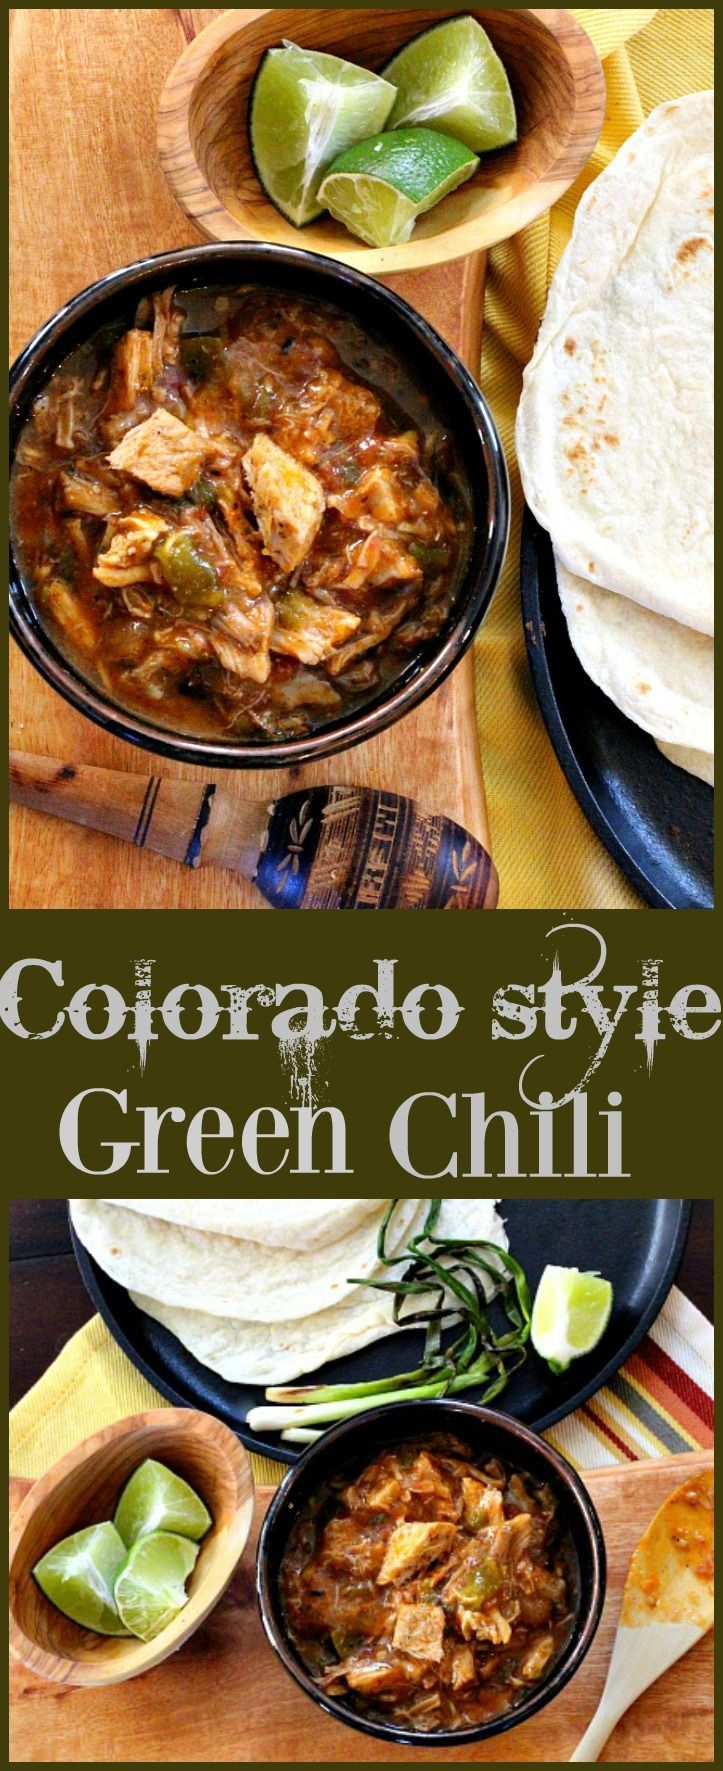 Make Green Chili like we do in the Wild West. Plenty of Hatch Chile, pork roast and a unique line up of Southwestern seasonings. Green Chili  is a must have in your recipe collection.